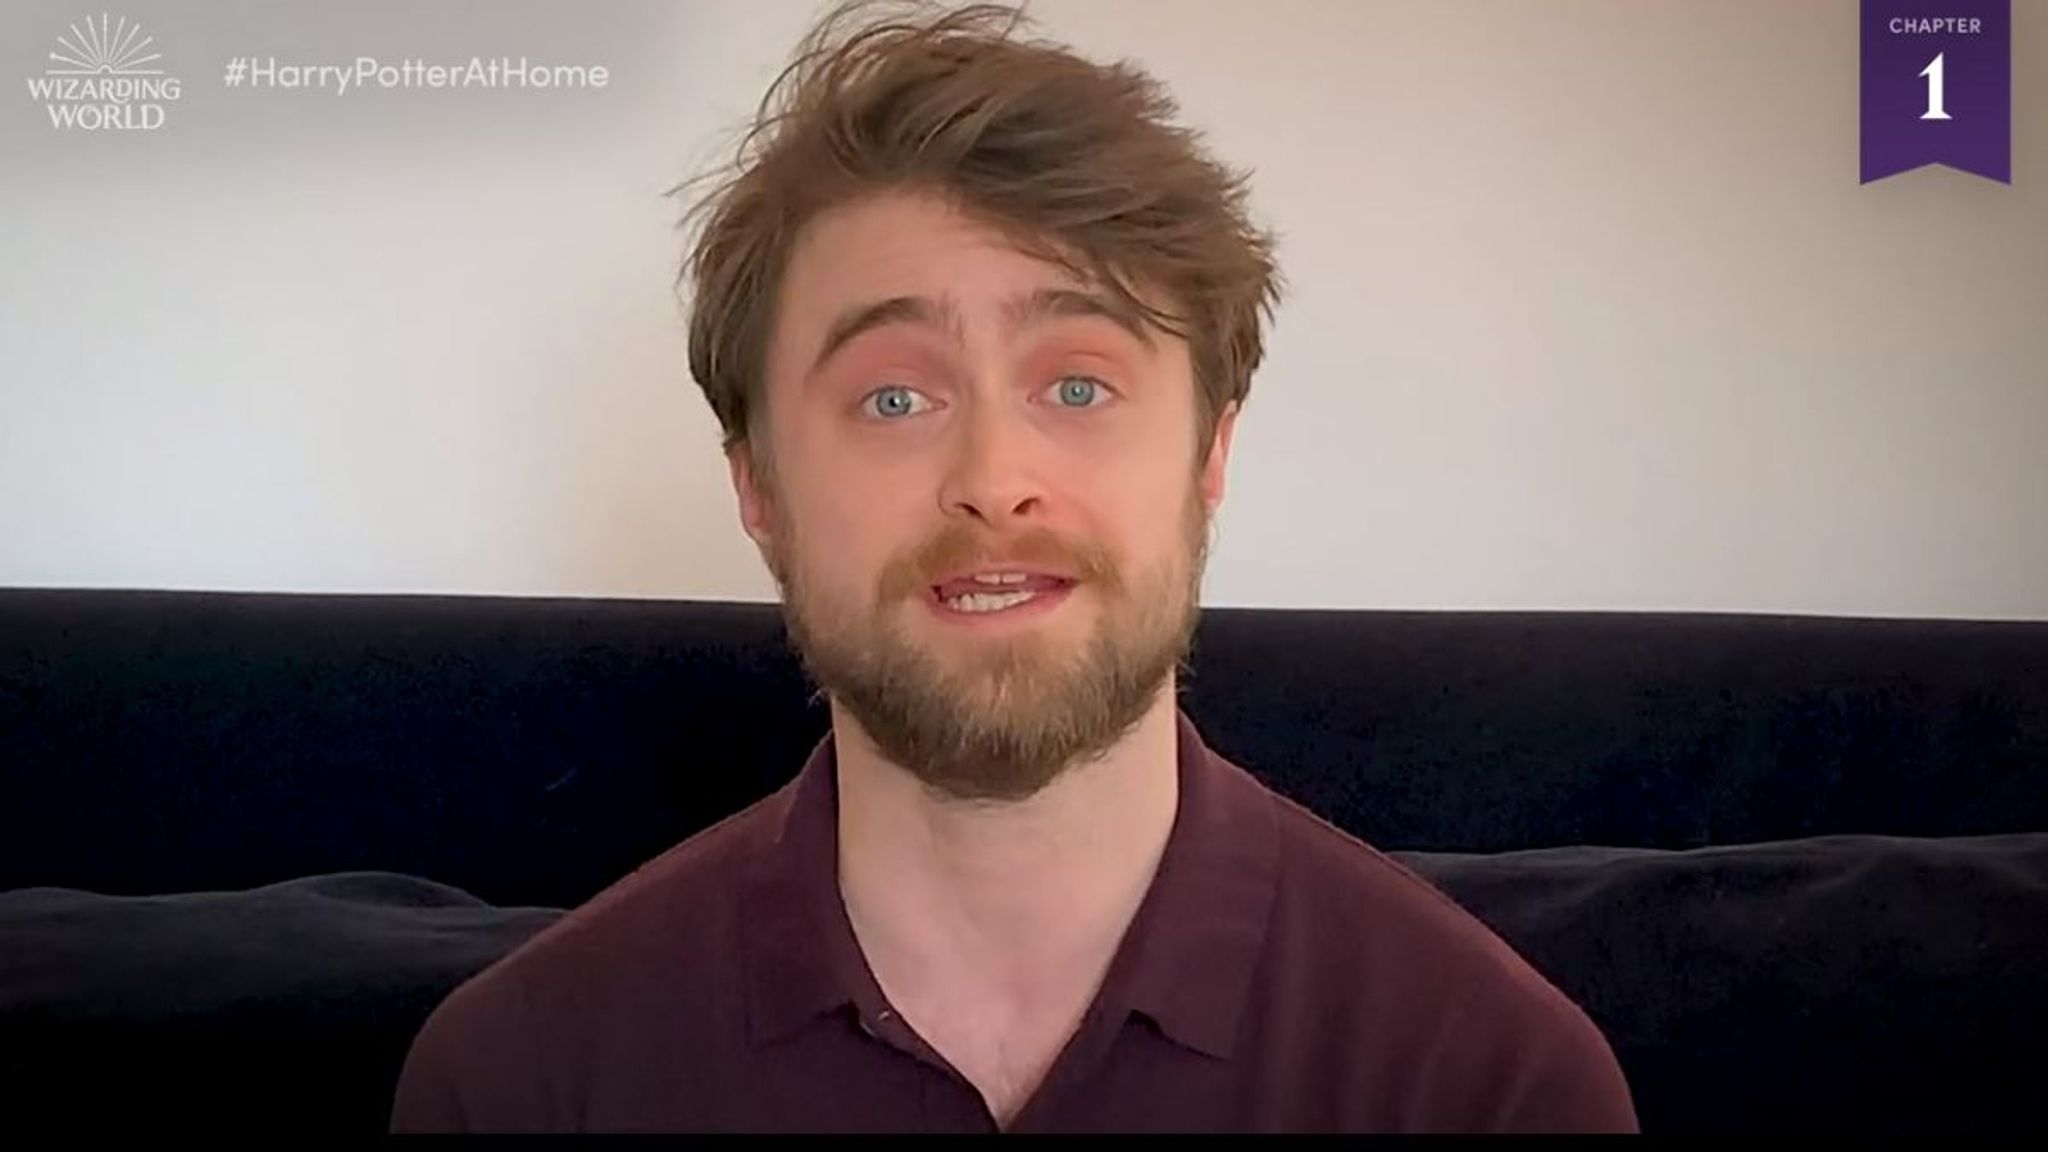 Daniel Radcliffe narrates the first chapter of Harry Potter And The Philosopher's Stone for JK Rowling's Wizarding World online hub